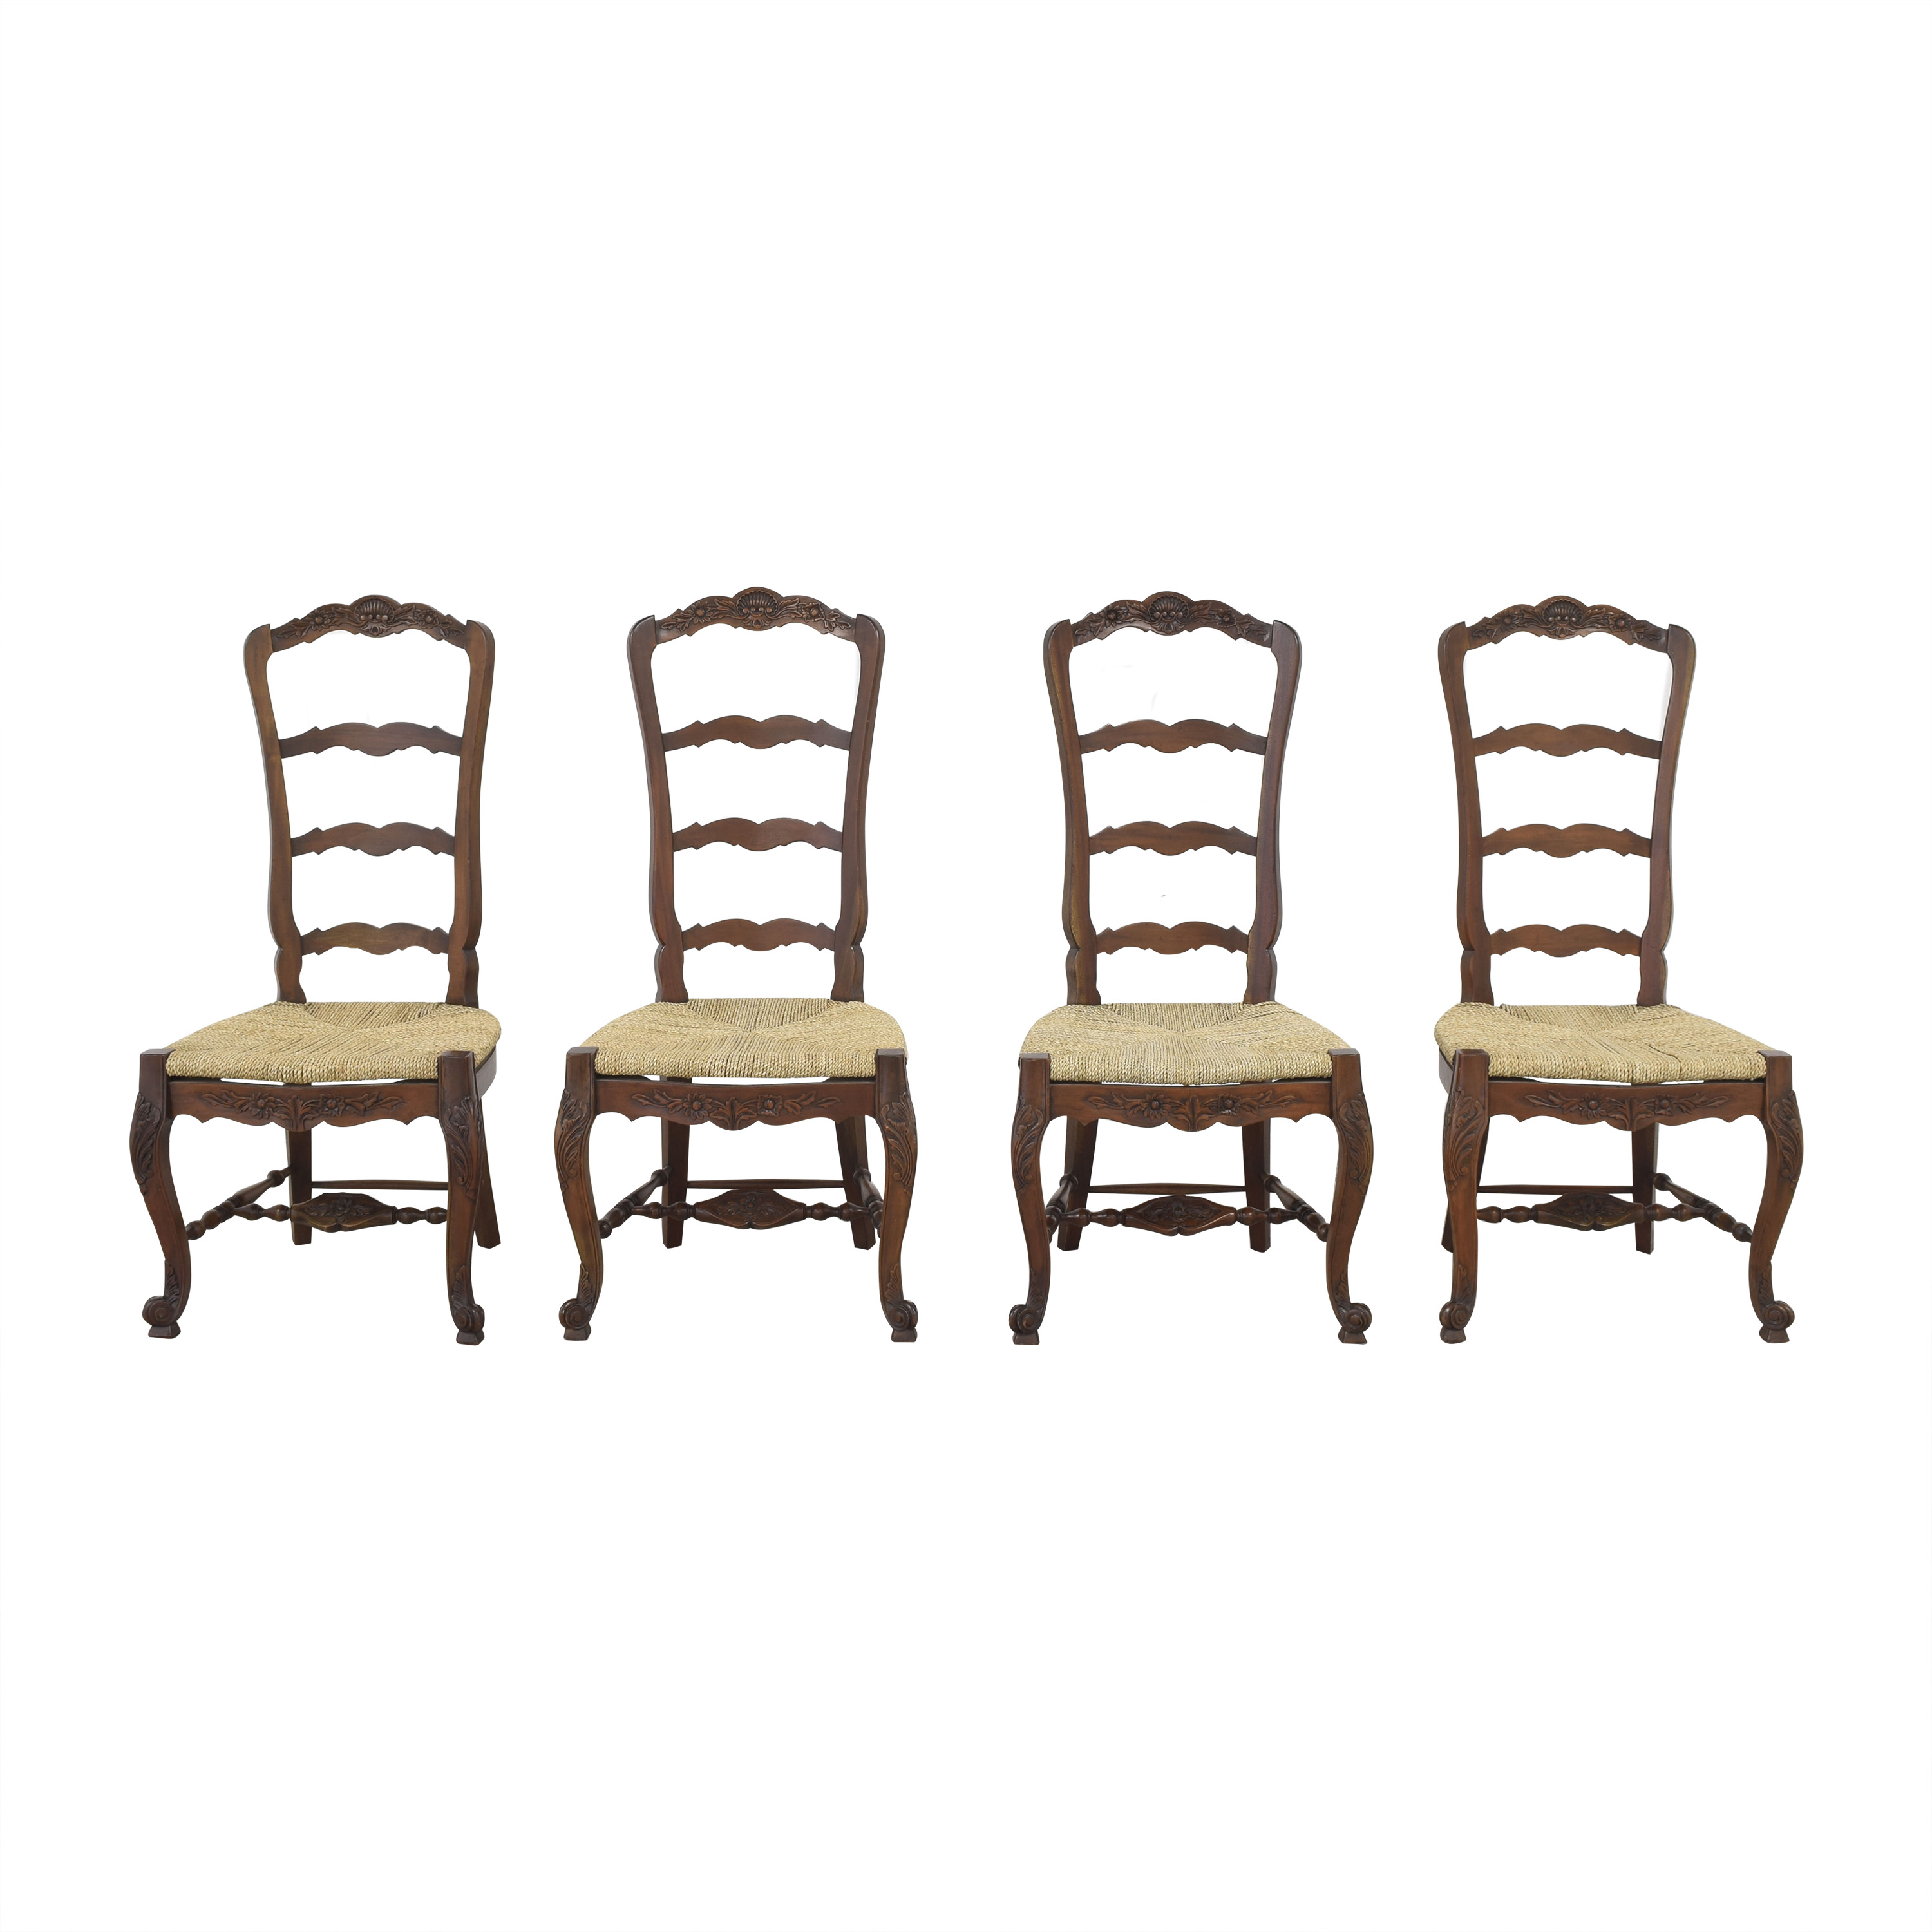 Marie Albert Marie Albert French Country Ladder Back Dining Chairs brown